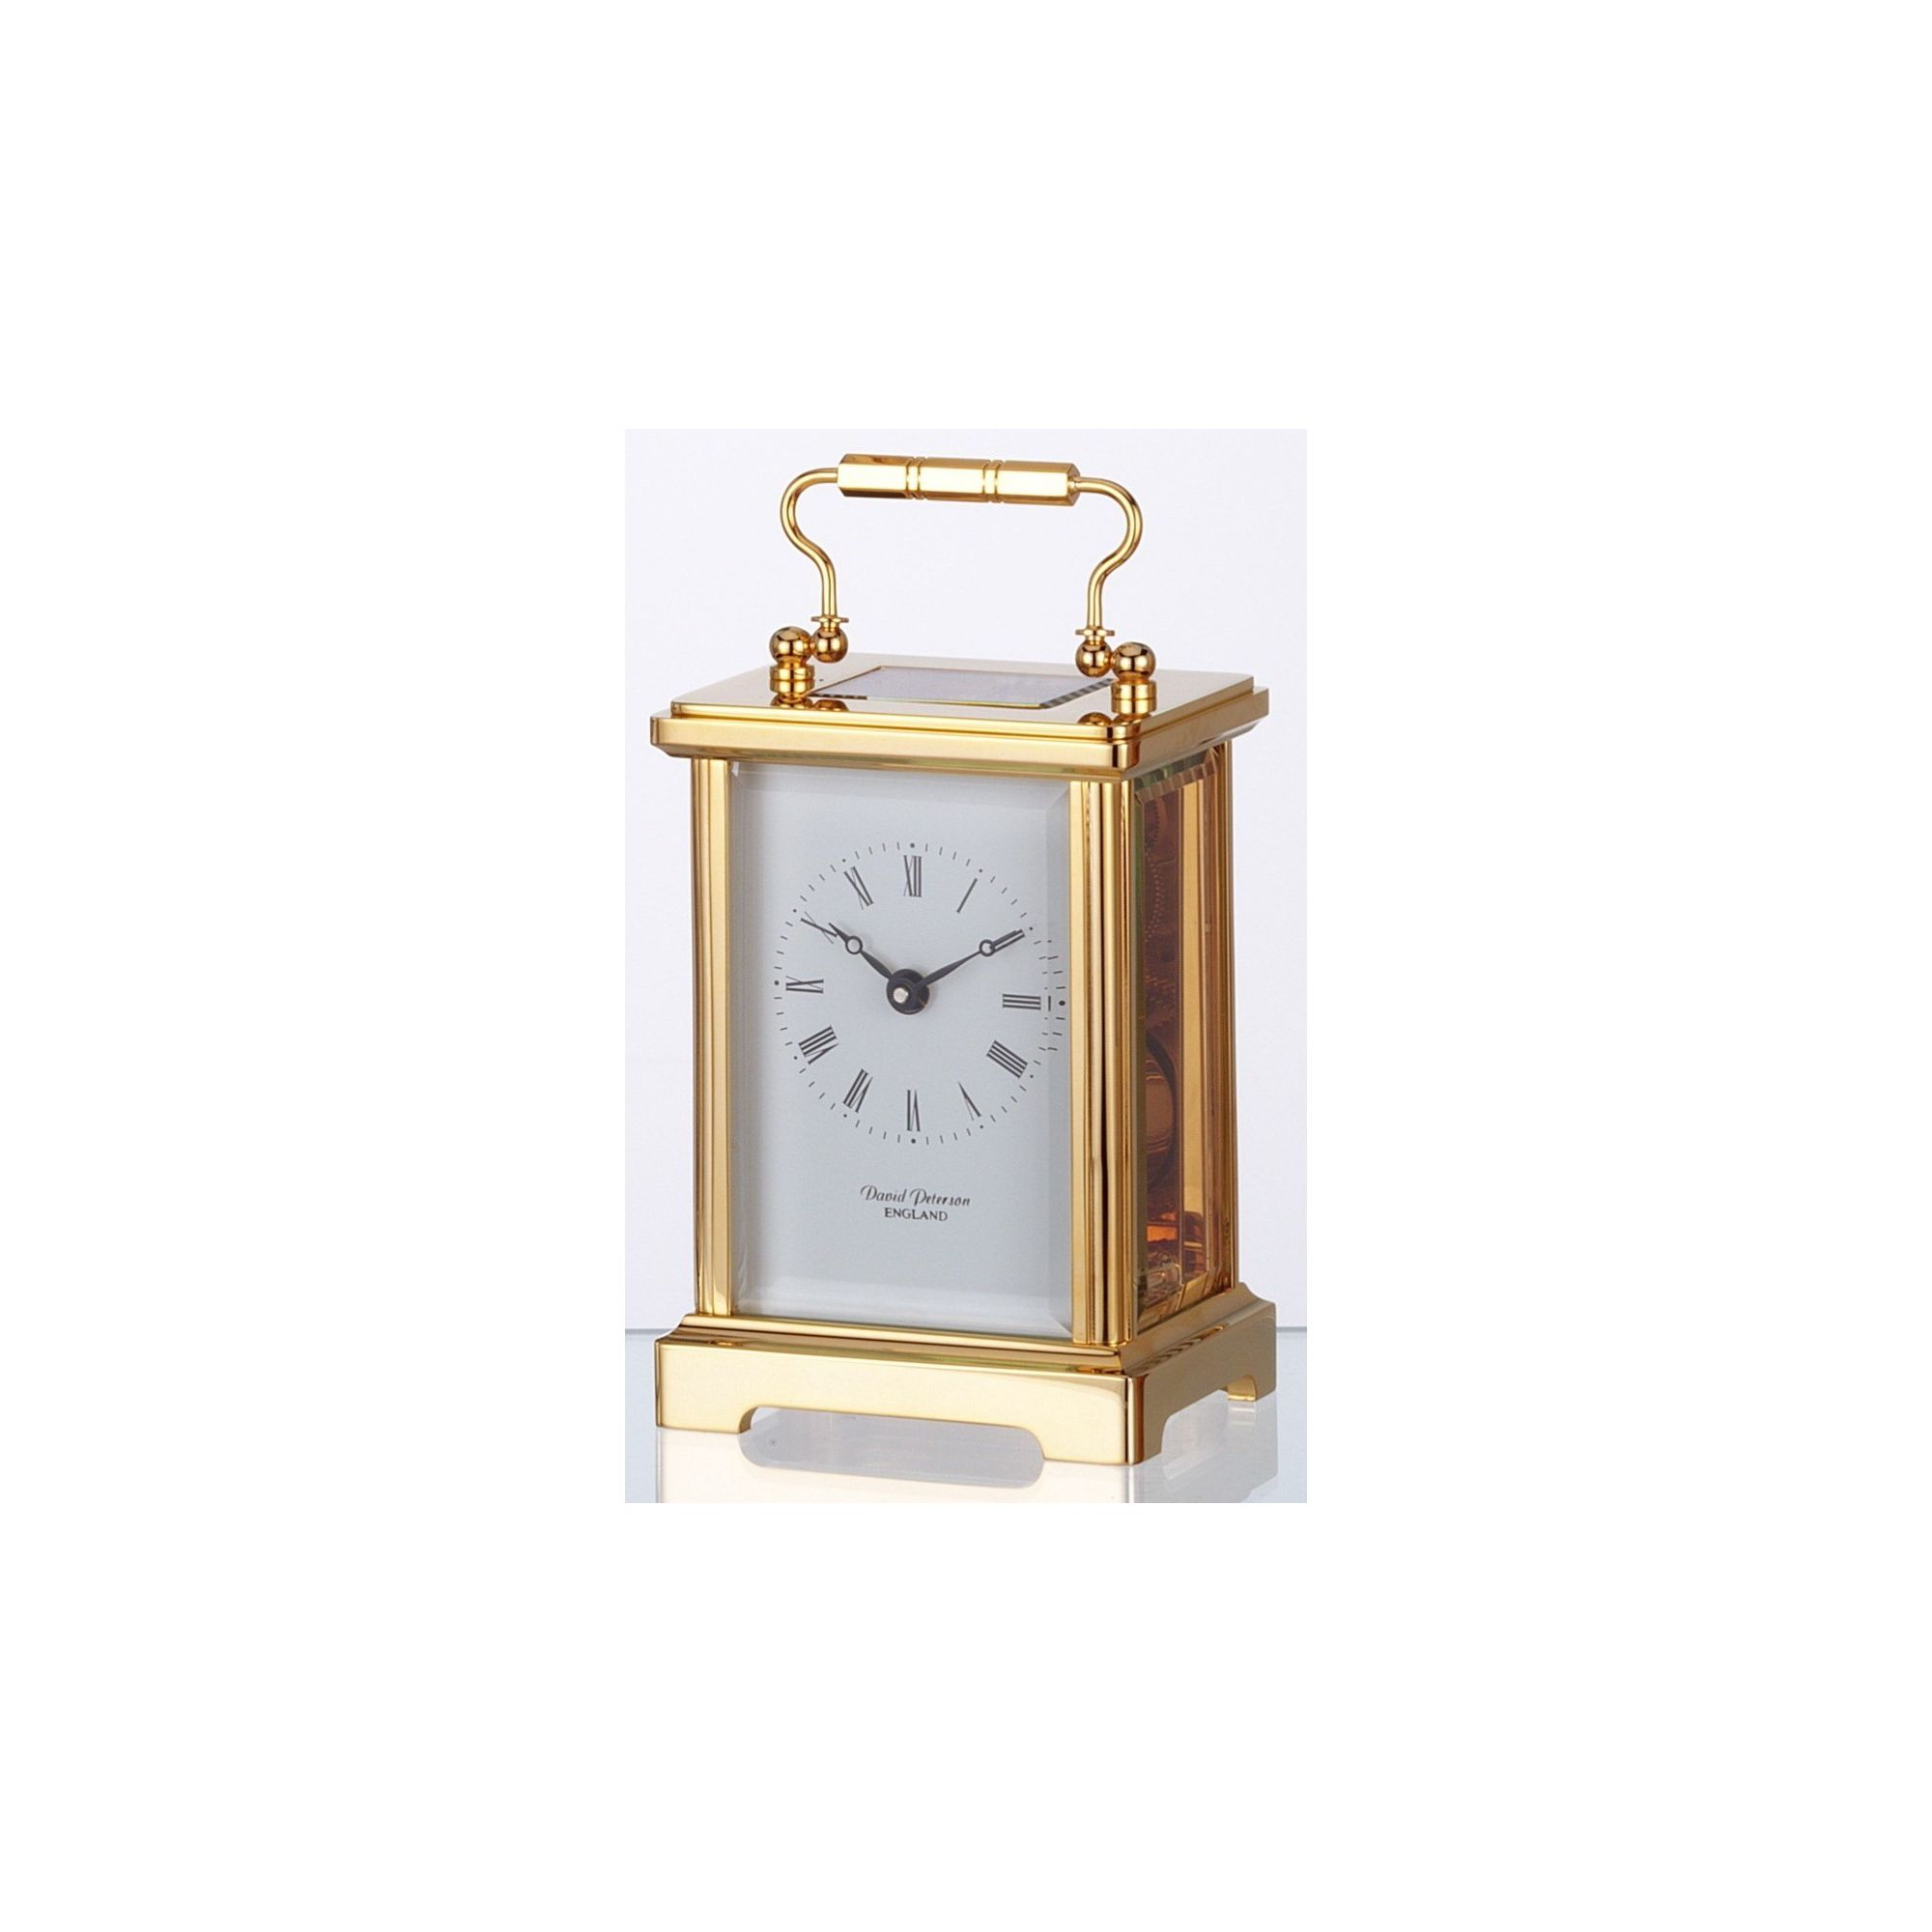 David Peterson Ltd 8 Day Obis Carriage Clock in Gold at Tesco Direct